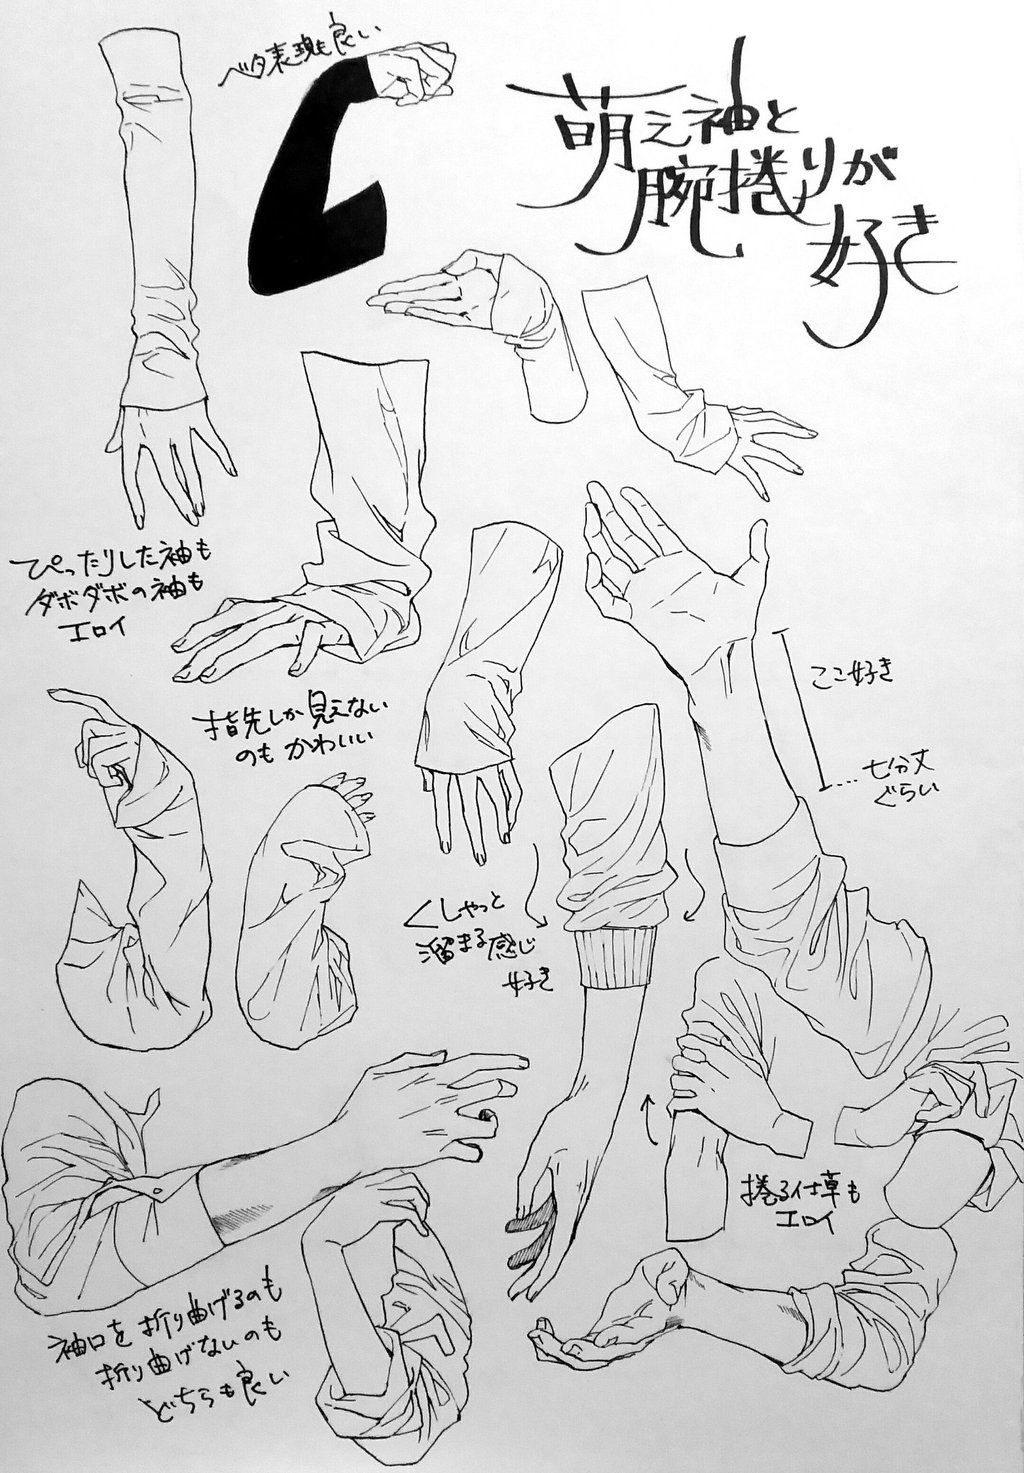 sleeve references reference sheet arm arms hand hands wrinkles